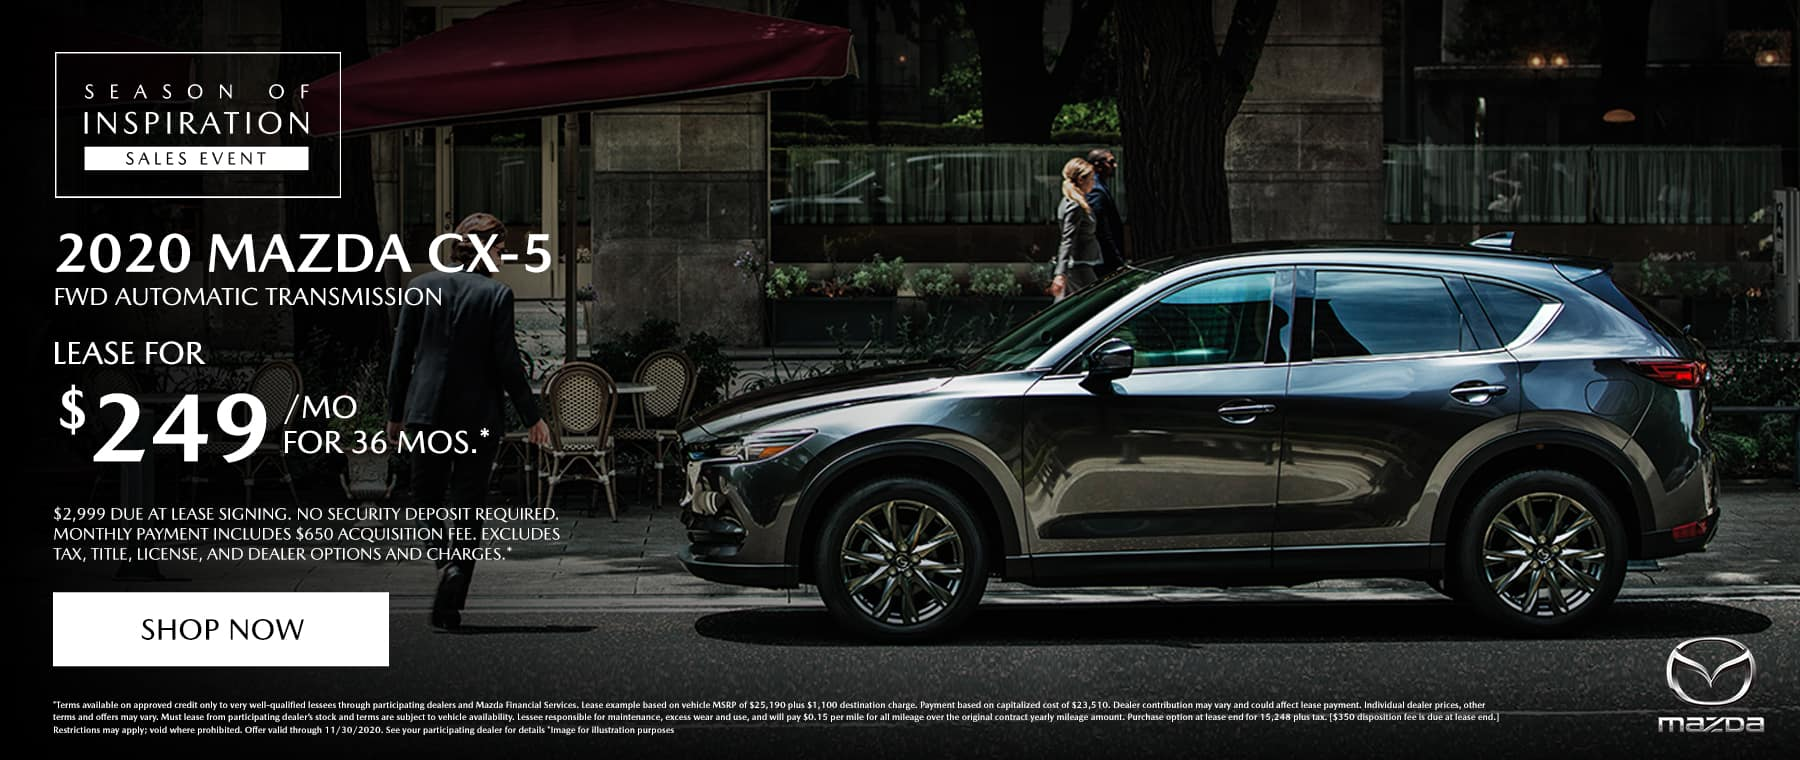 2020 CX-5 (FWD / Automatic Transmission) lease for $249 a month / 36 months